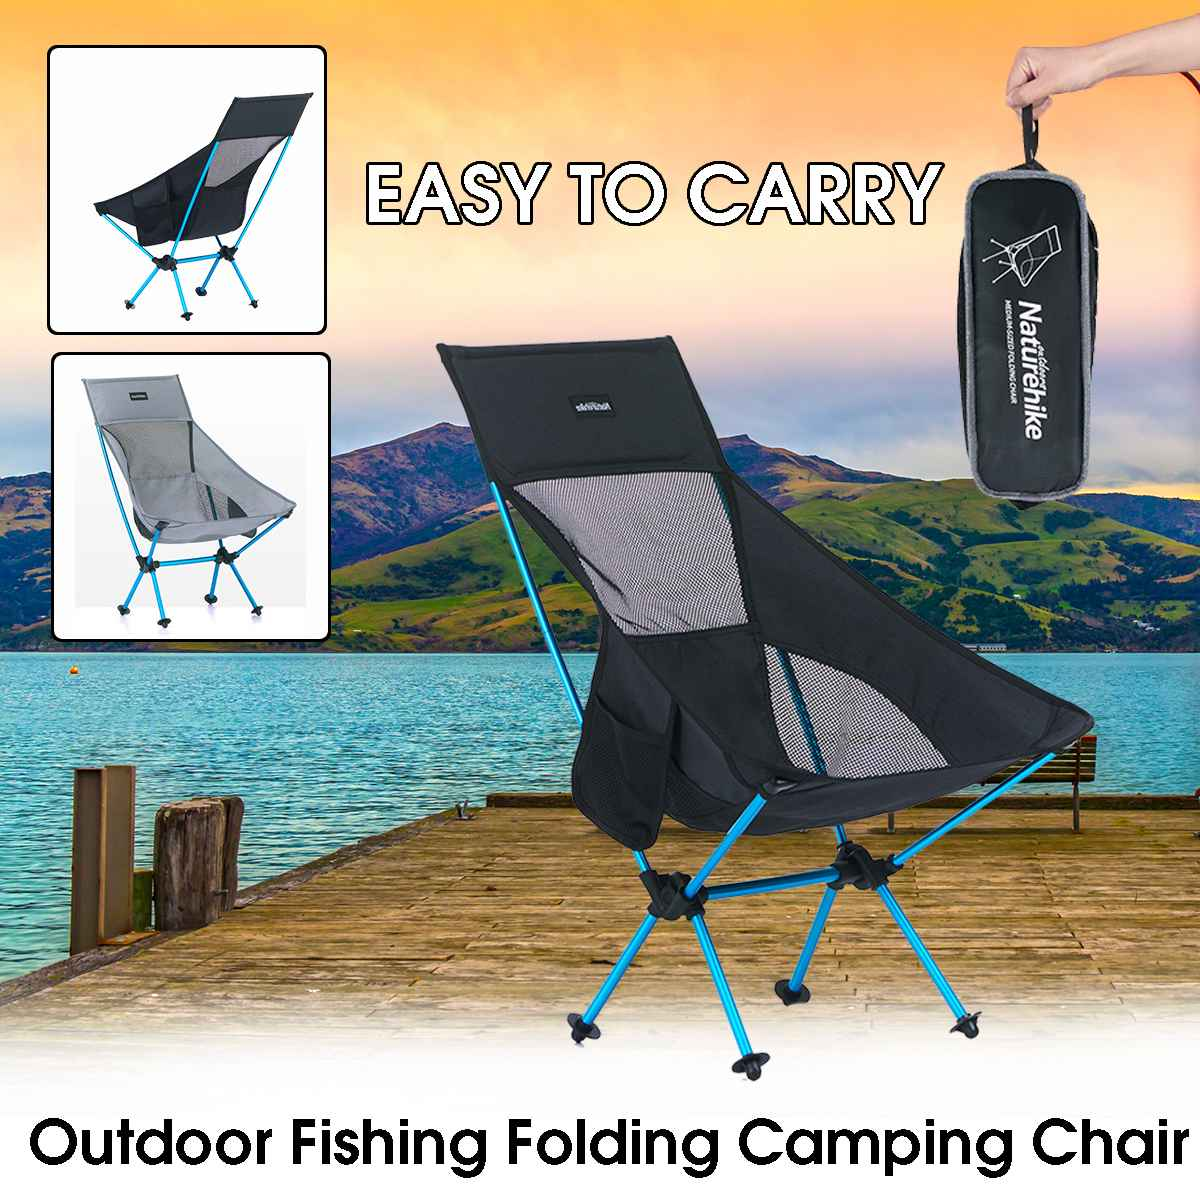 Us 44 24 16 Off Naturehike Portable Light Outdoor High Back Folding Chair Camping Mesh Picnic Bbq Beach Fishing Backpack Seat Max Load 90kg In